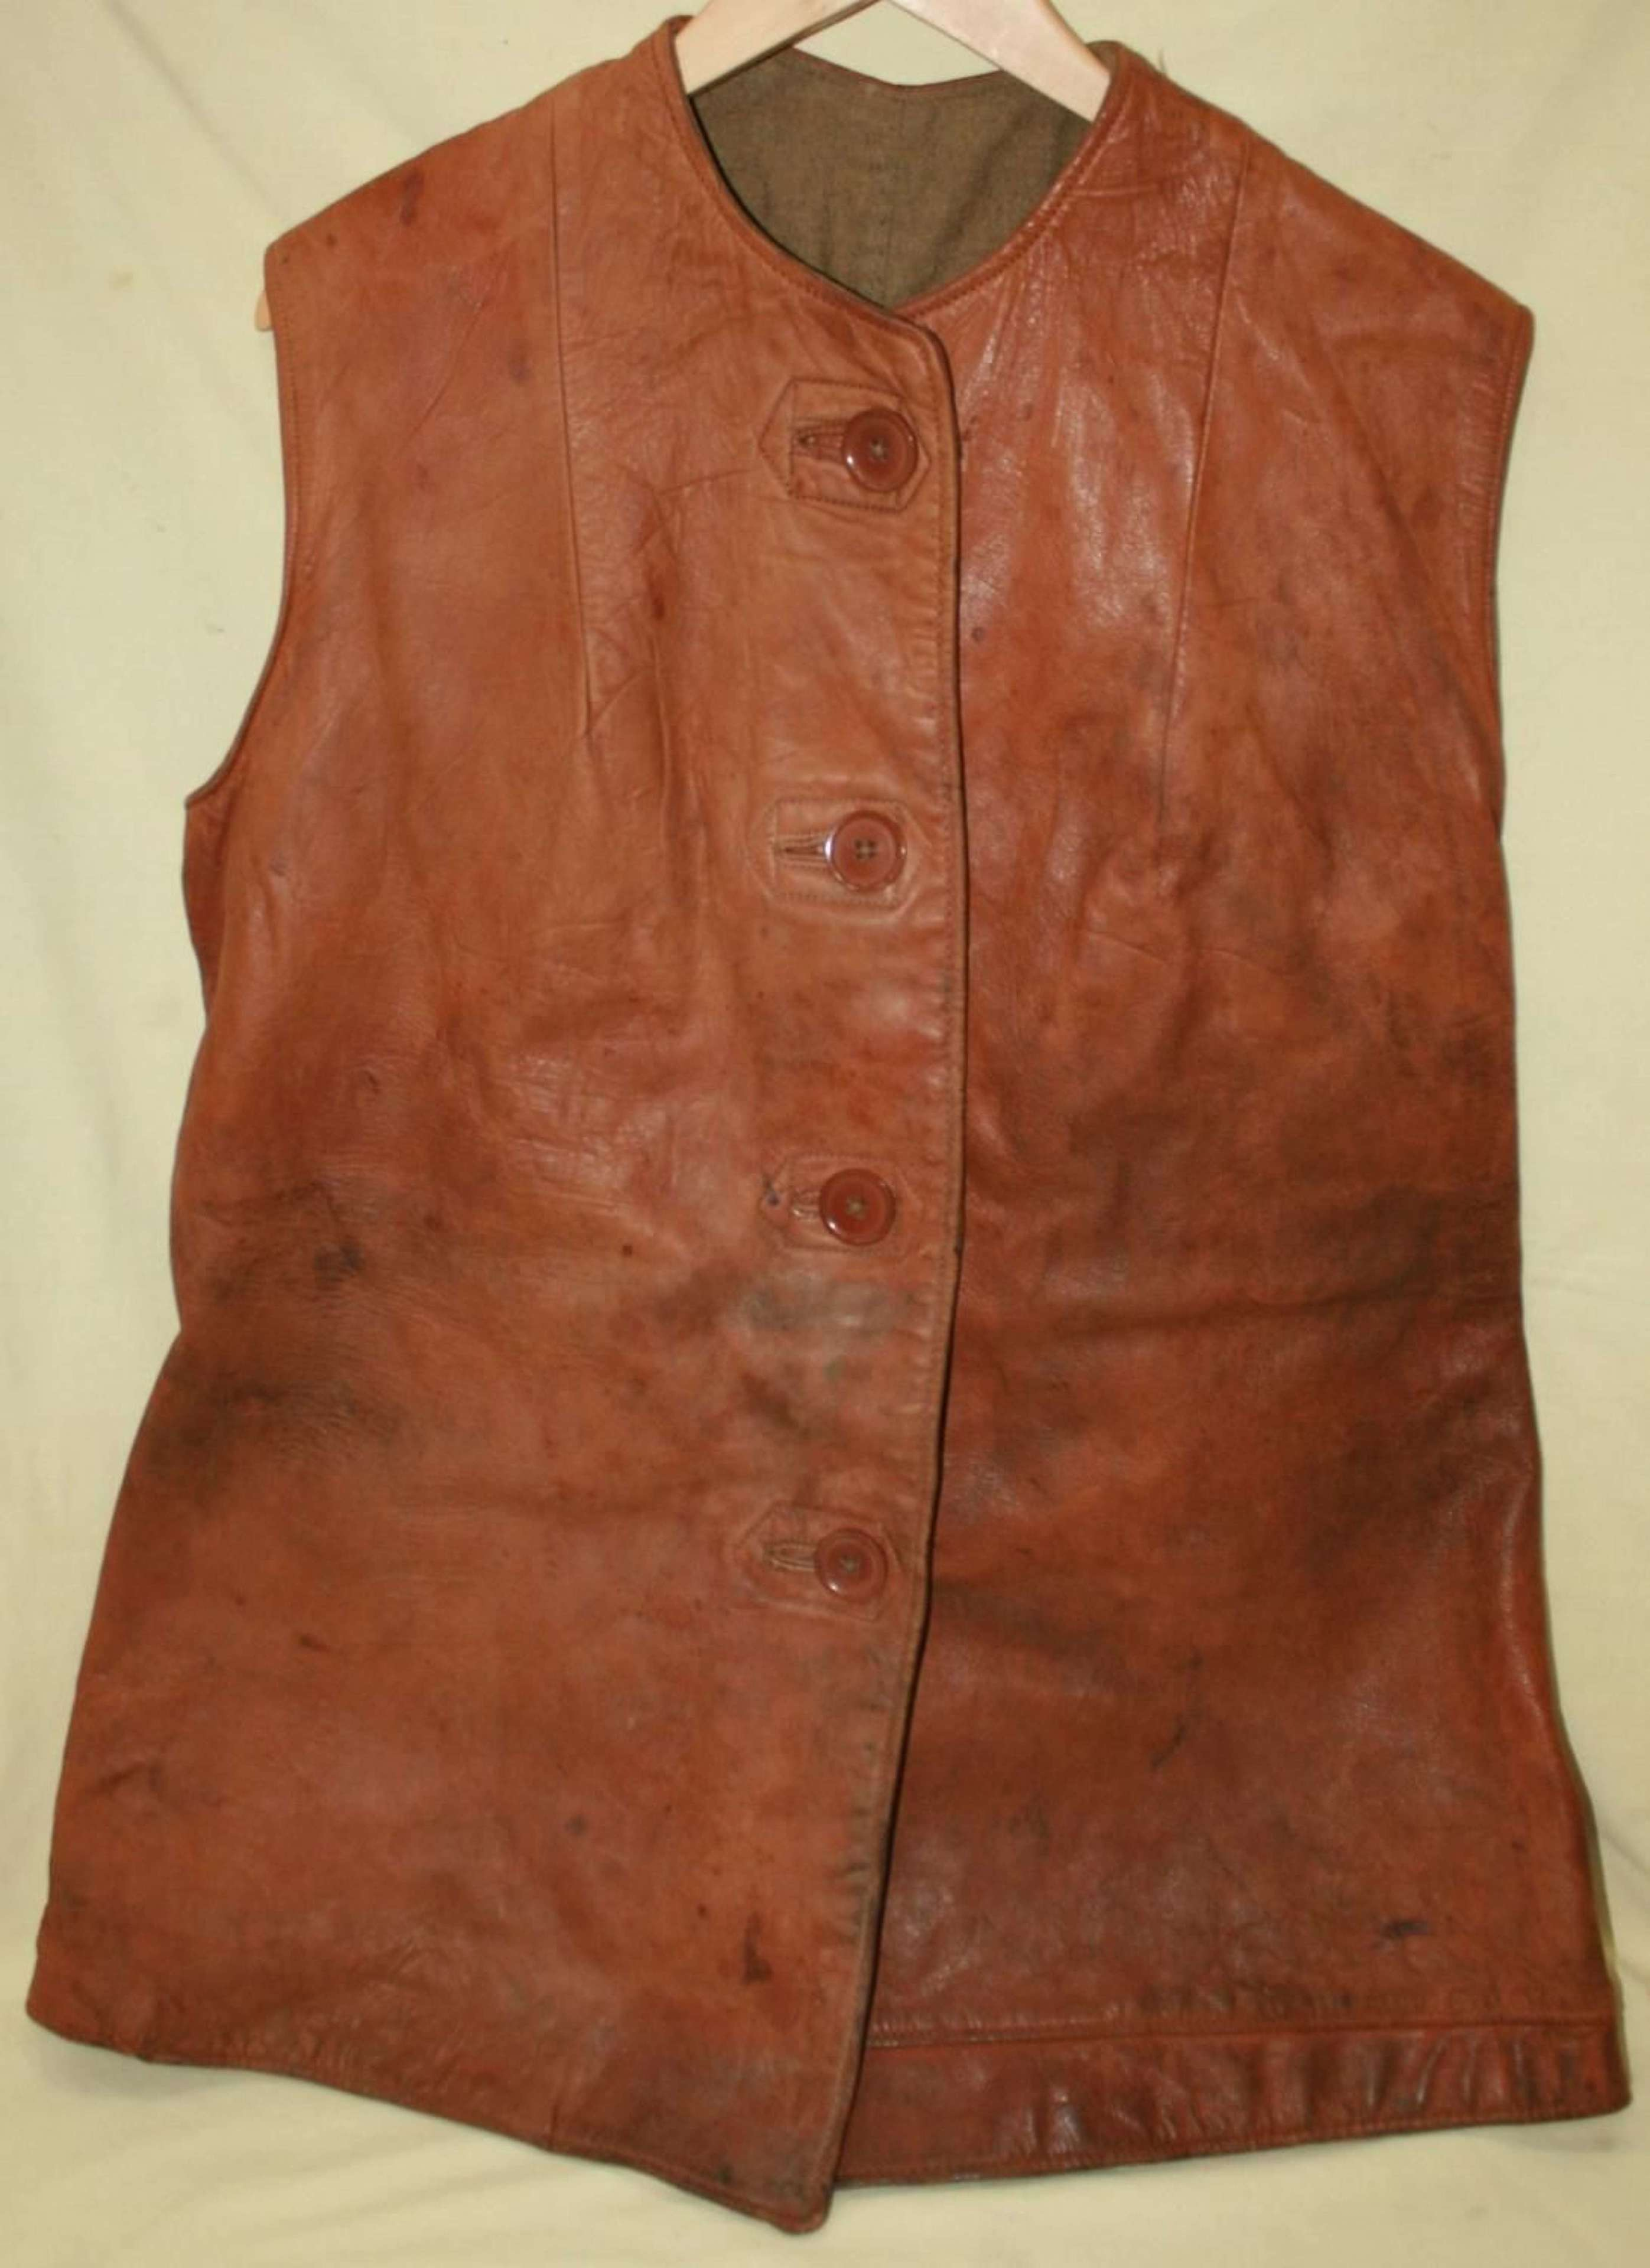 A WWII 1942 DATED ATS LEATHER JERKIN